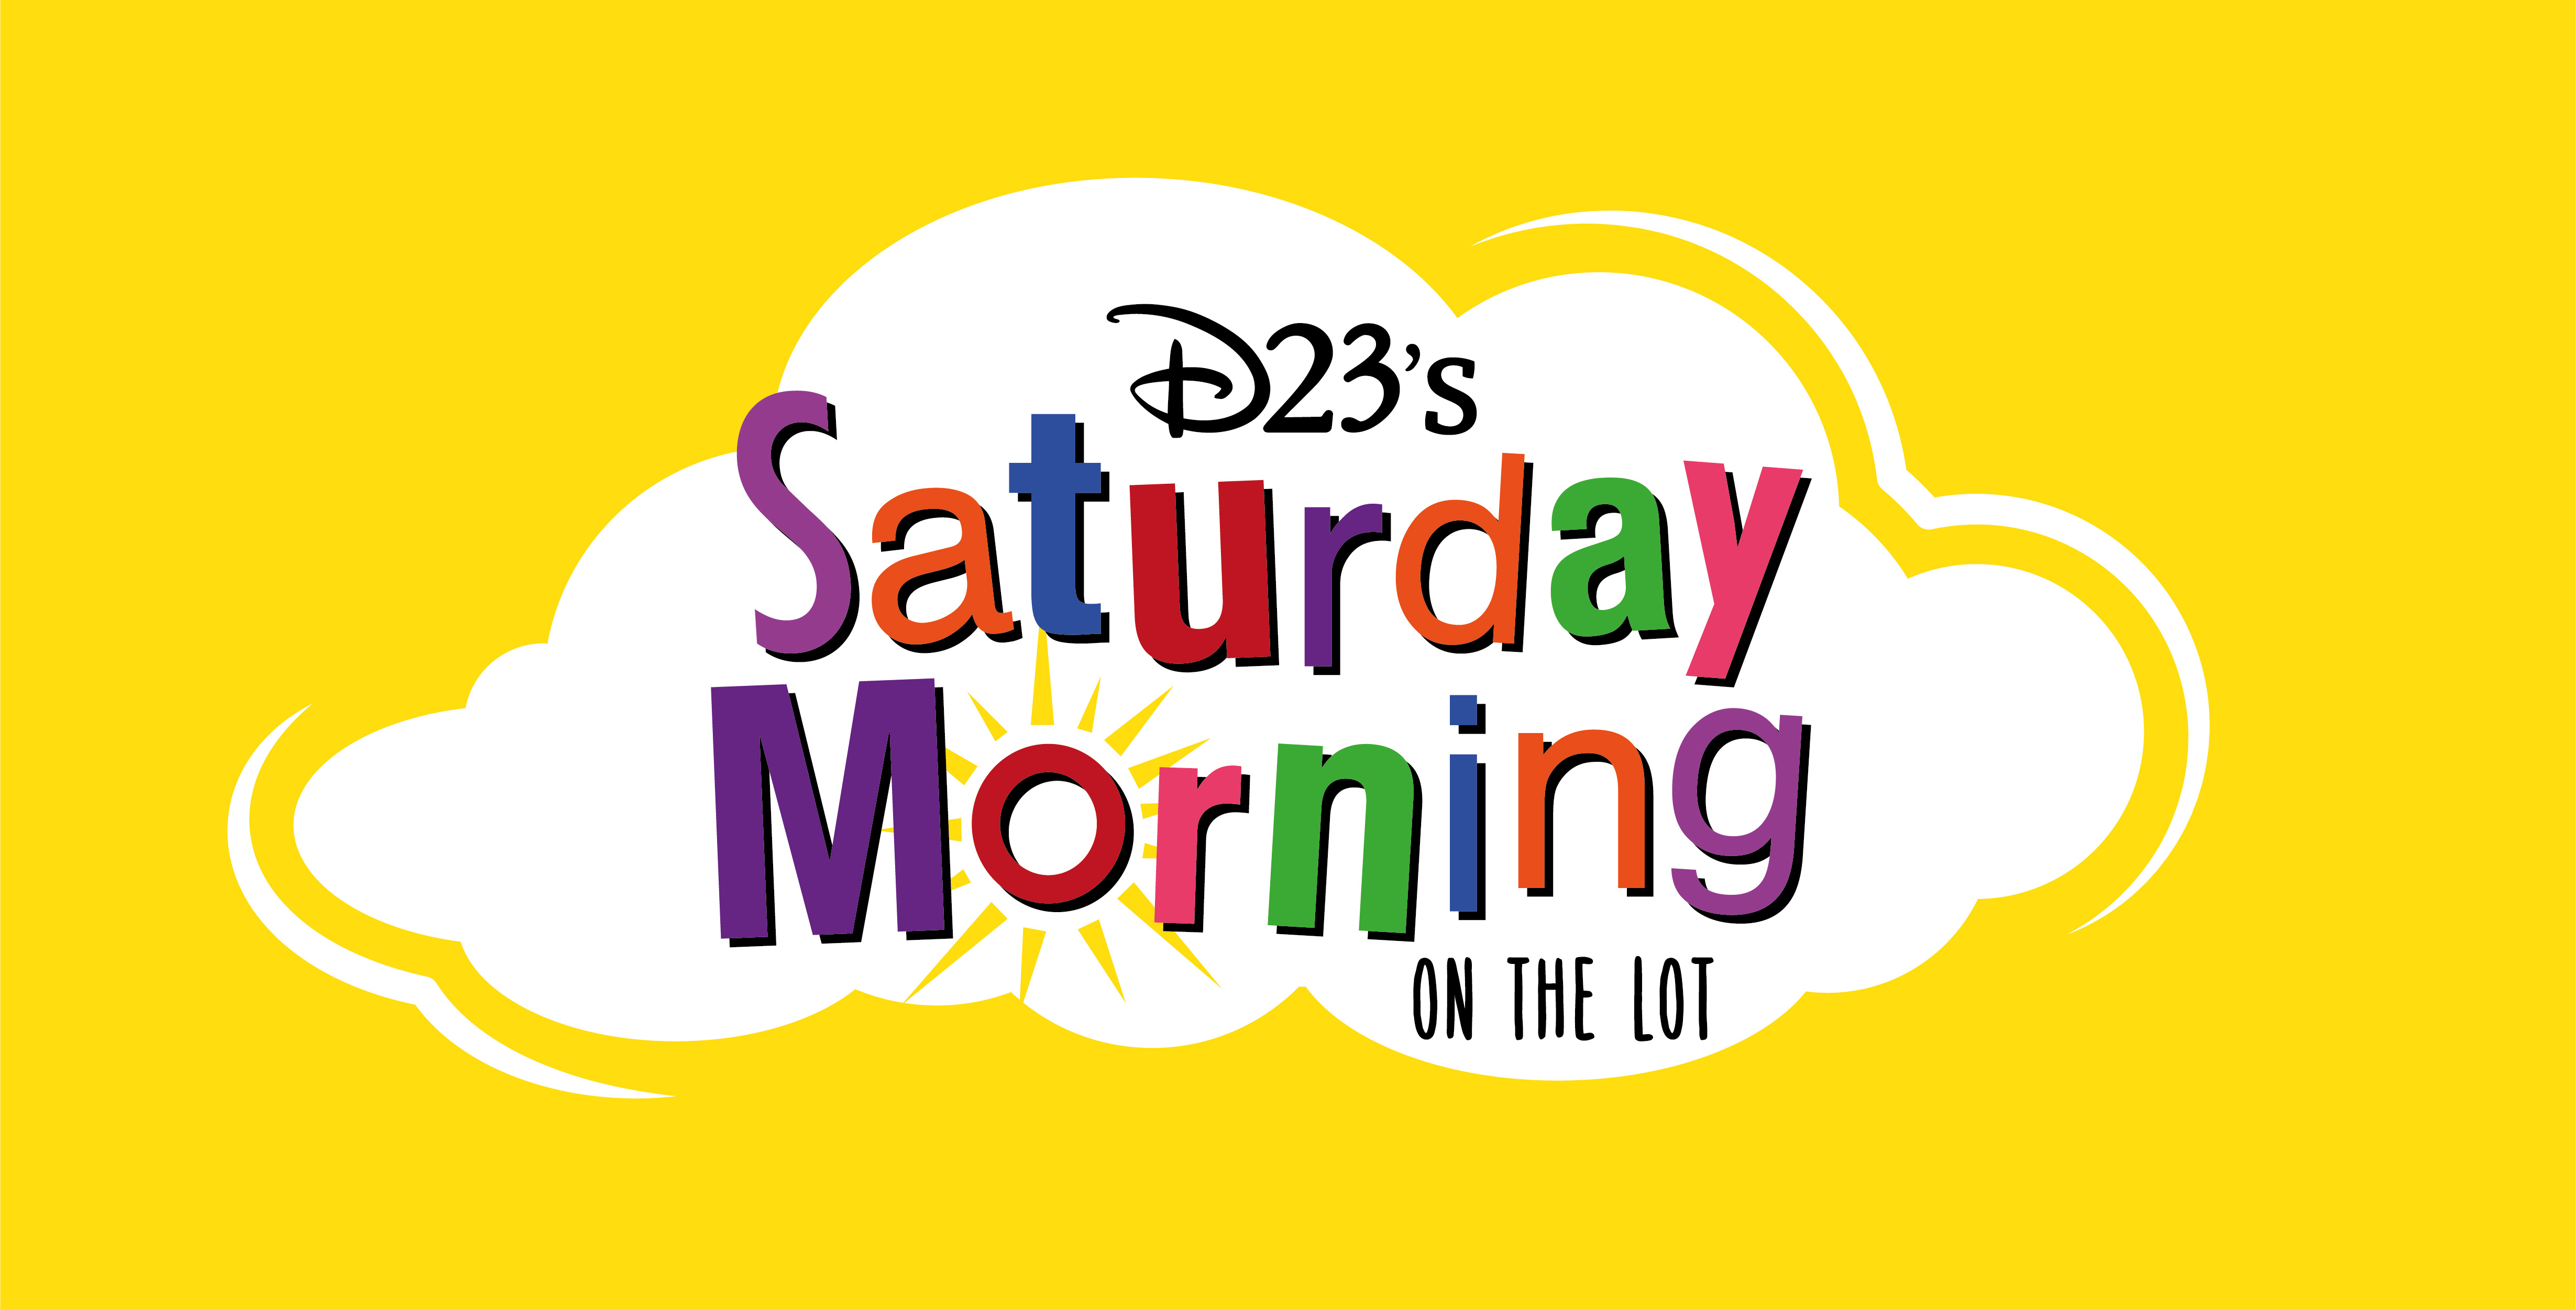 Tickets for D23's Saturday Morning on the Lot in Burbank from Disney D23